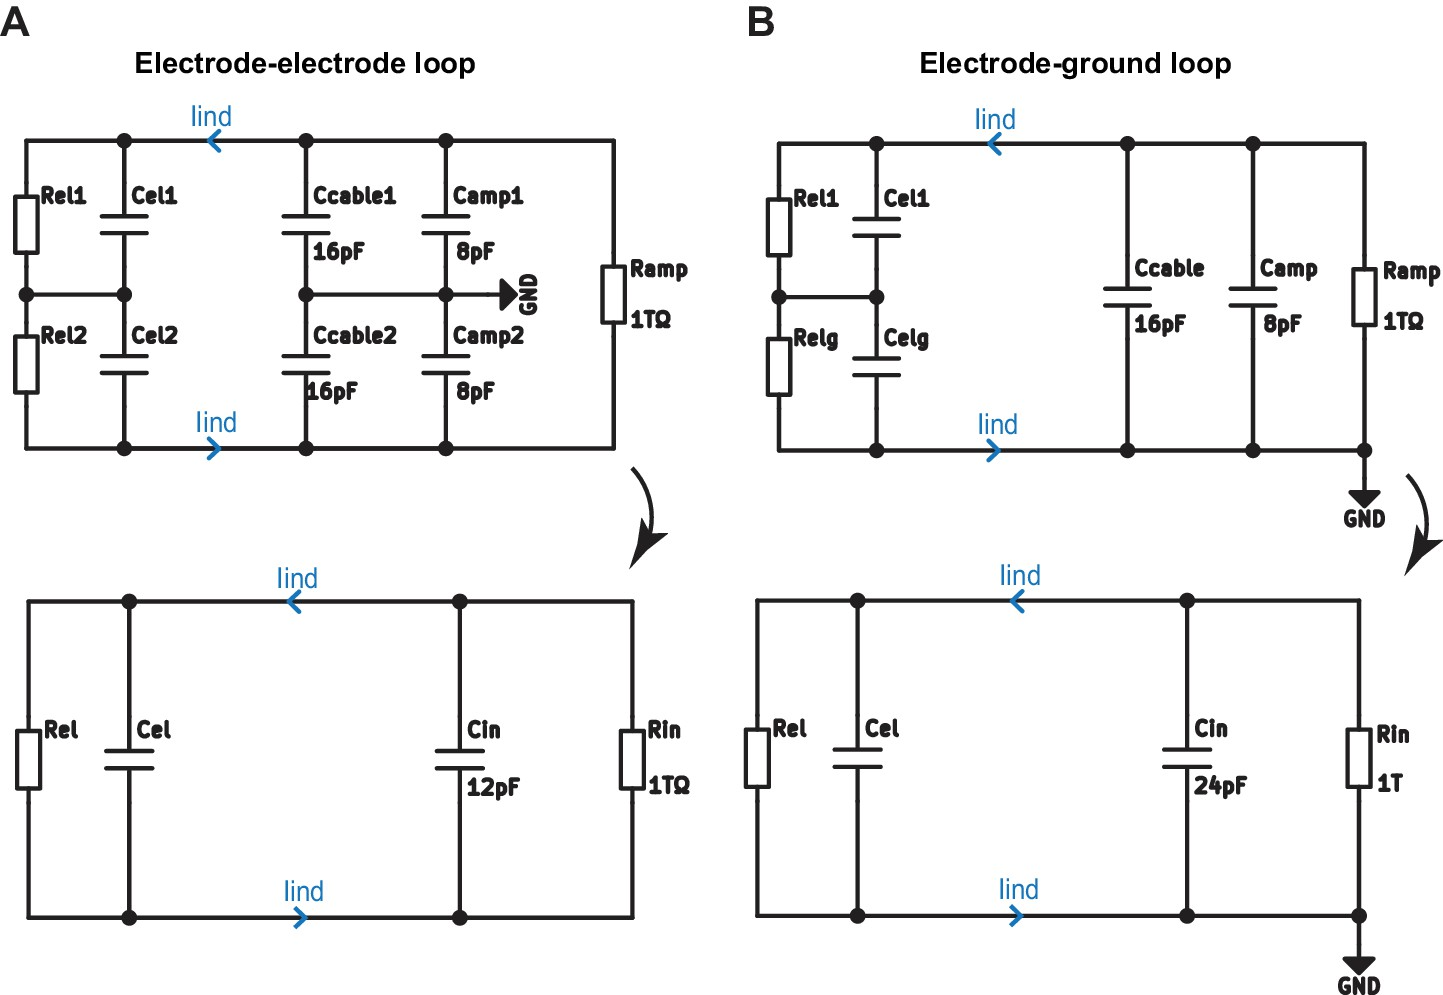 Lifting The Veil On Dynamics Of Neuronal Activities Evoked By Found A Basic Wiring Diagram Please Note That 90 My Camping Circuit Representations Two Induction Loops Shown In Figure 5